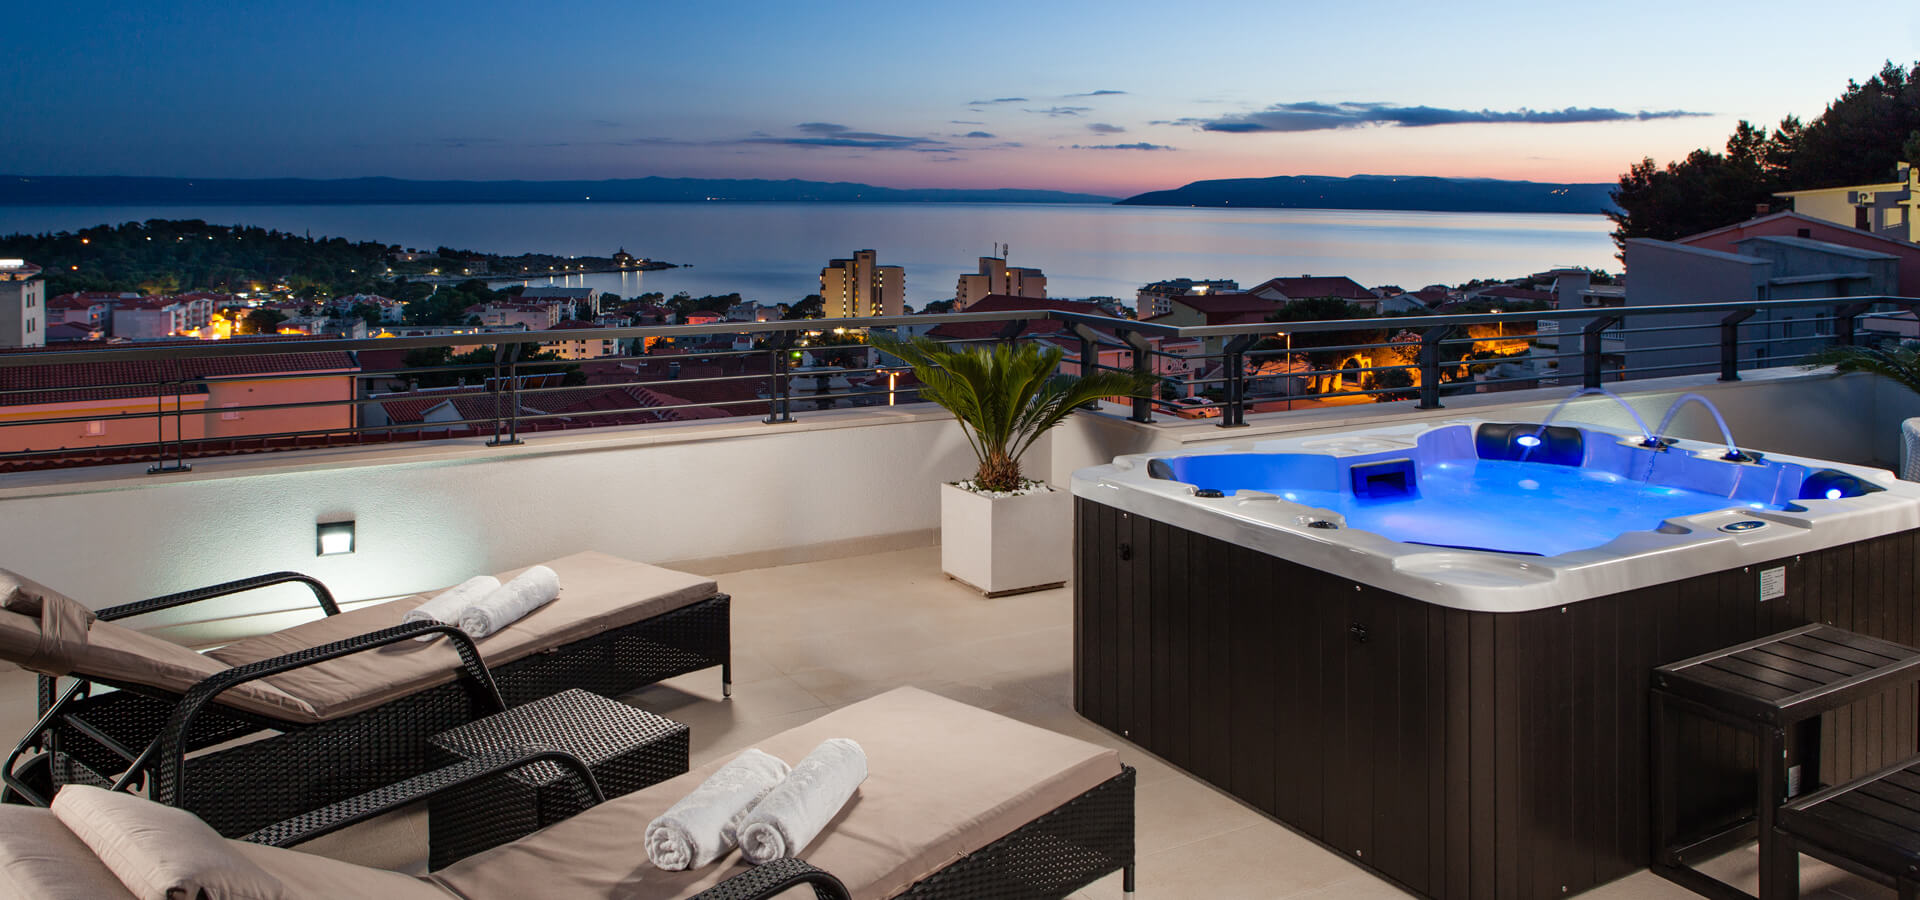 Sea view - villa with jacuzzi in Croatia - photography by Ergo Media